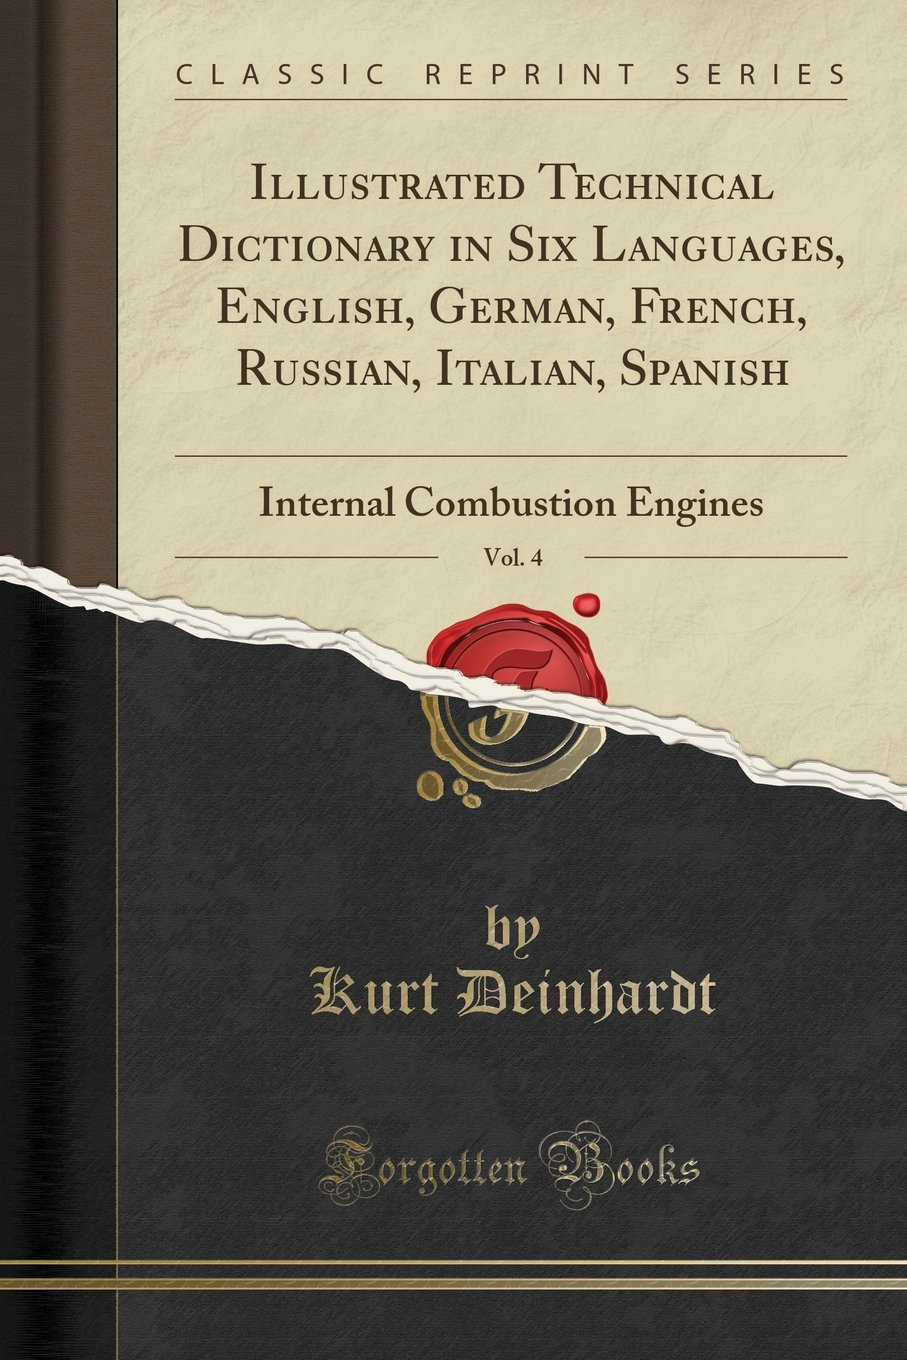 Illustrated Technical Dictionary in Six Languages, English, German, French, Russian, Italian, Spanish, Vol. 4: Internal Combustion Engines (Classic Reprint) by Forgotten Books